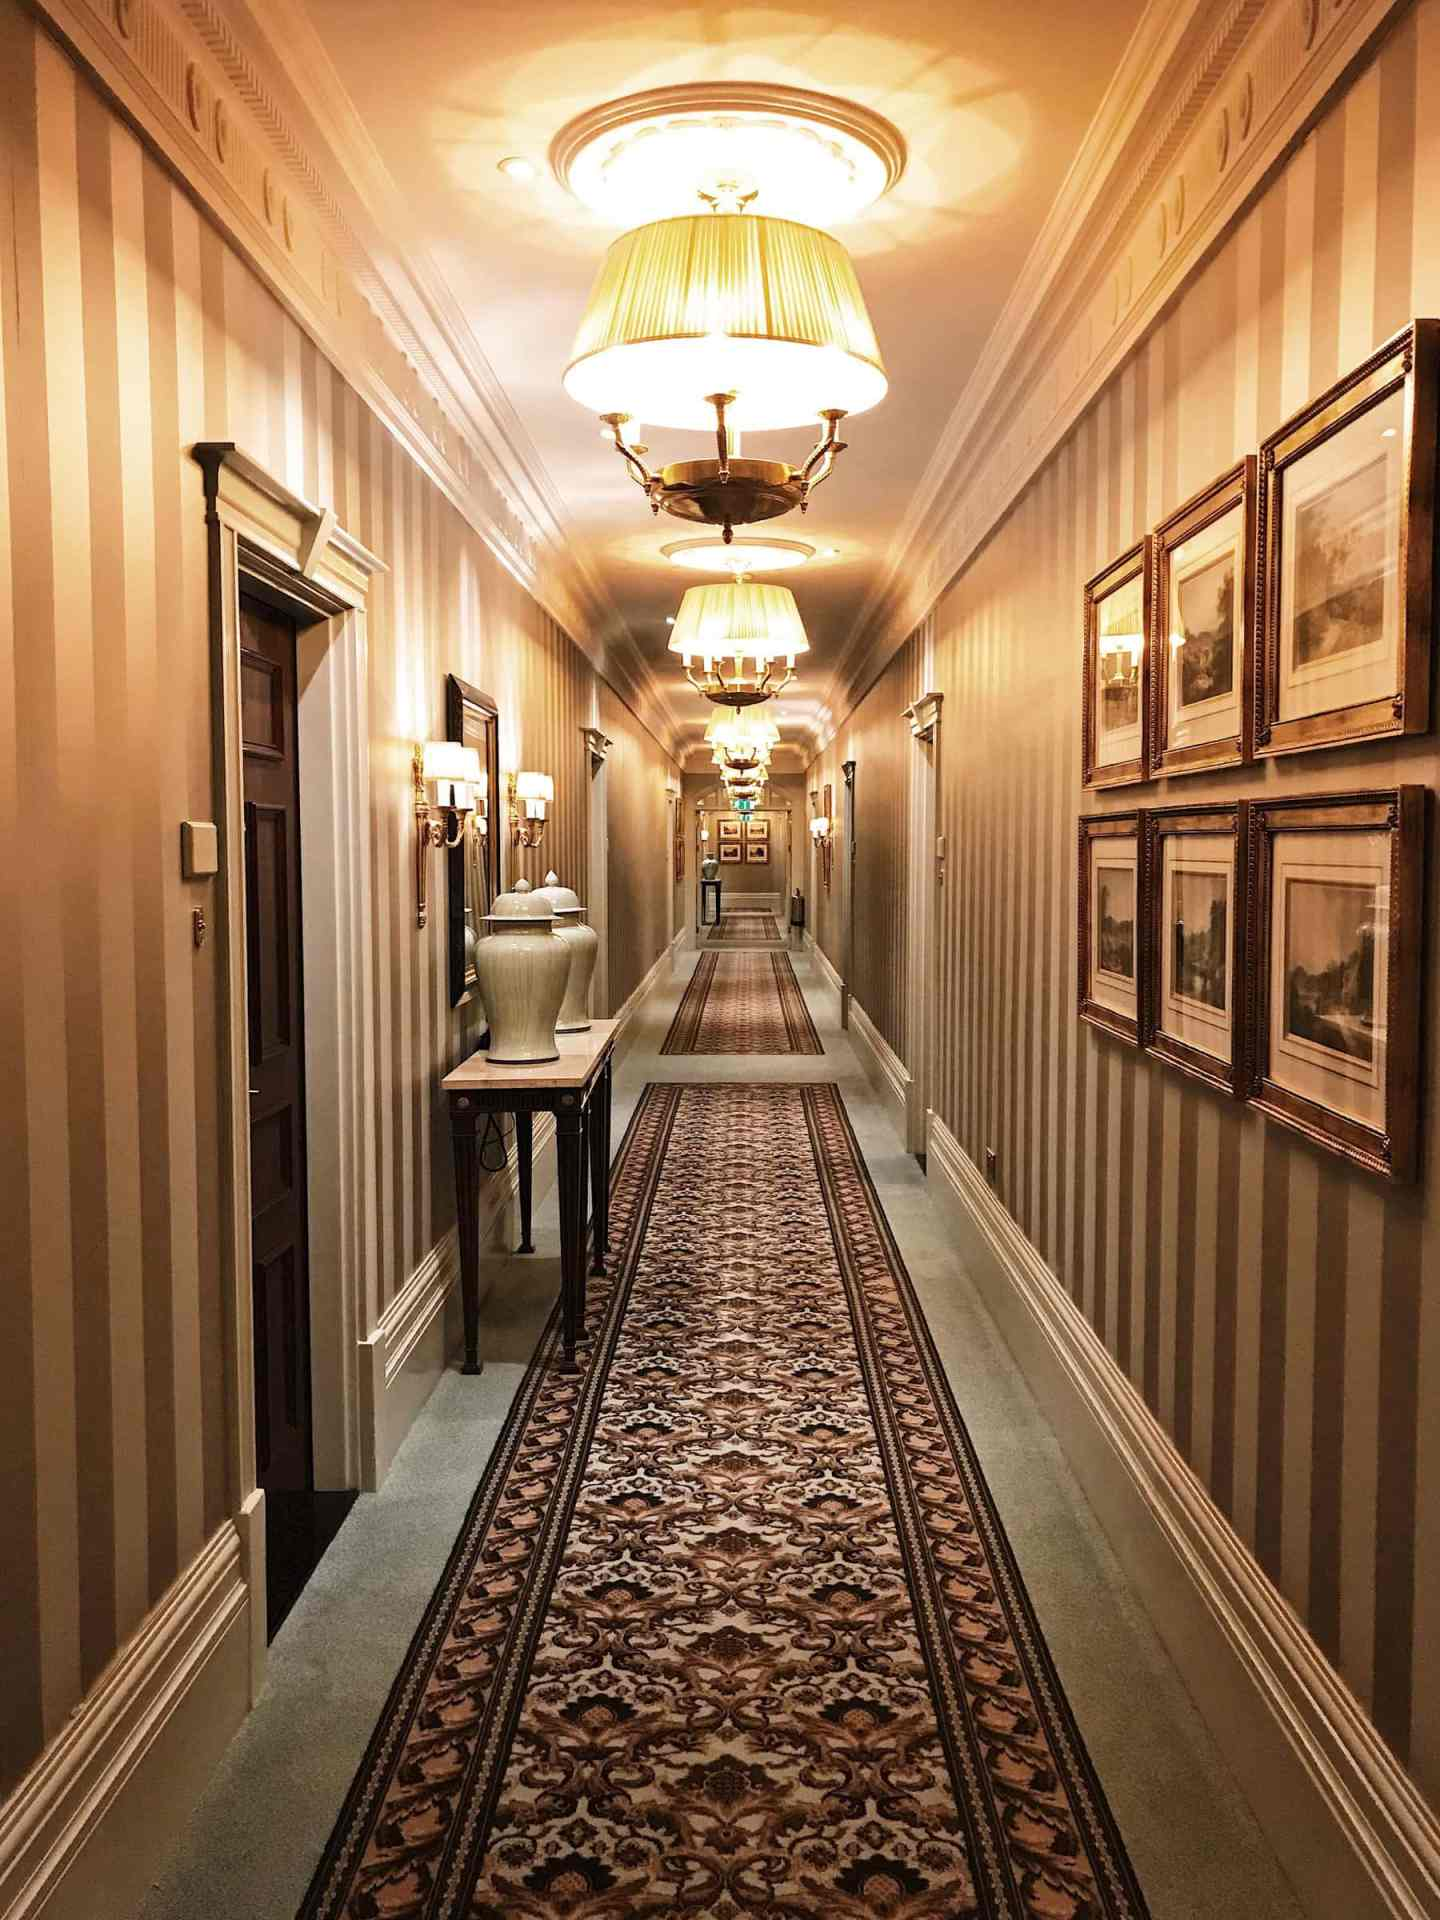 The corridor leading to our room. I was expecting to see twin girls at the end aka The Shining!